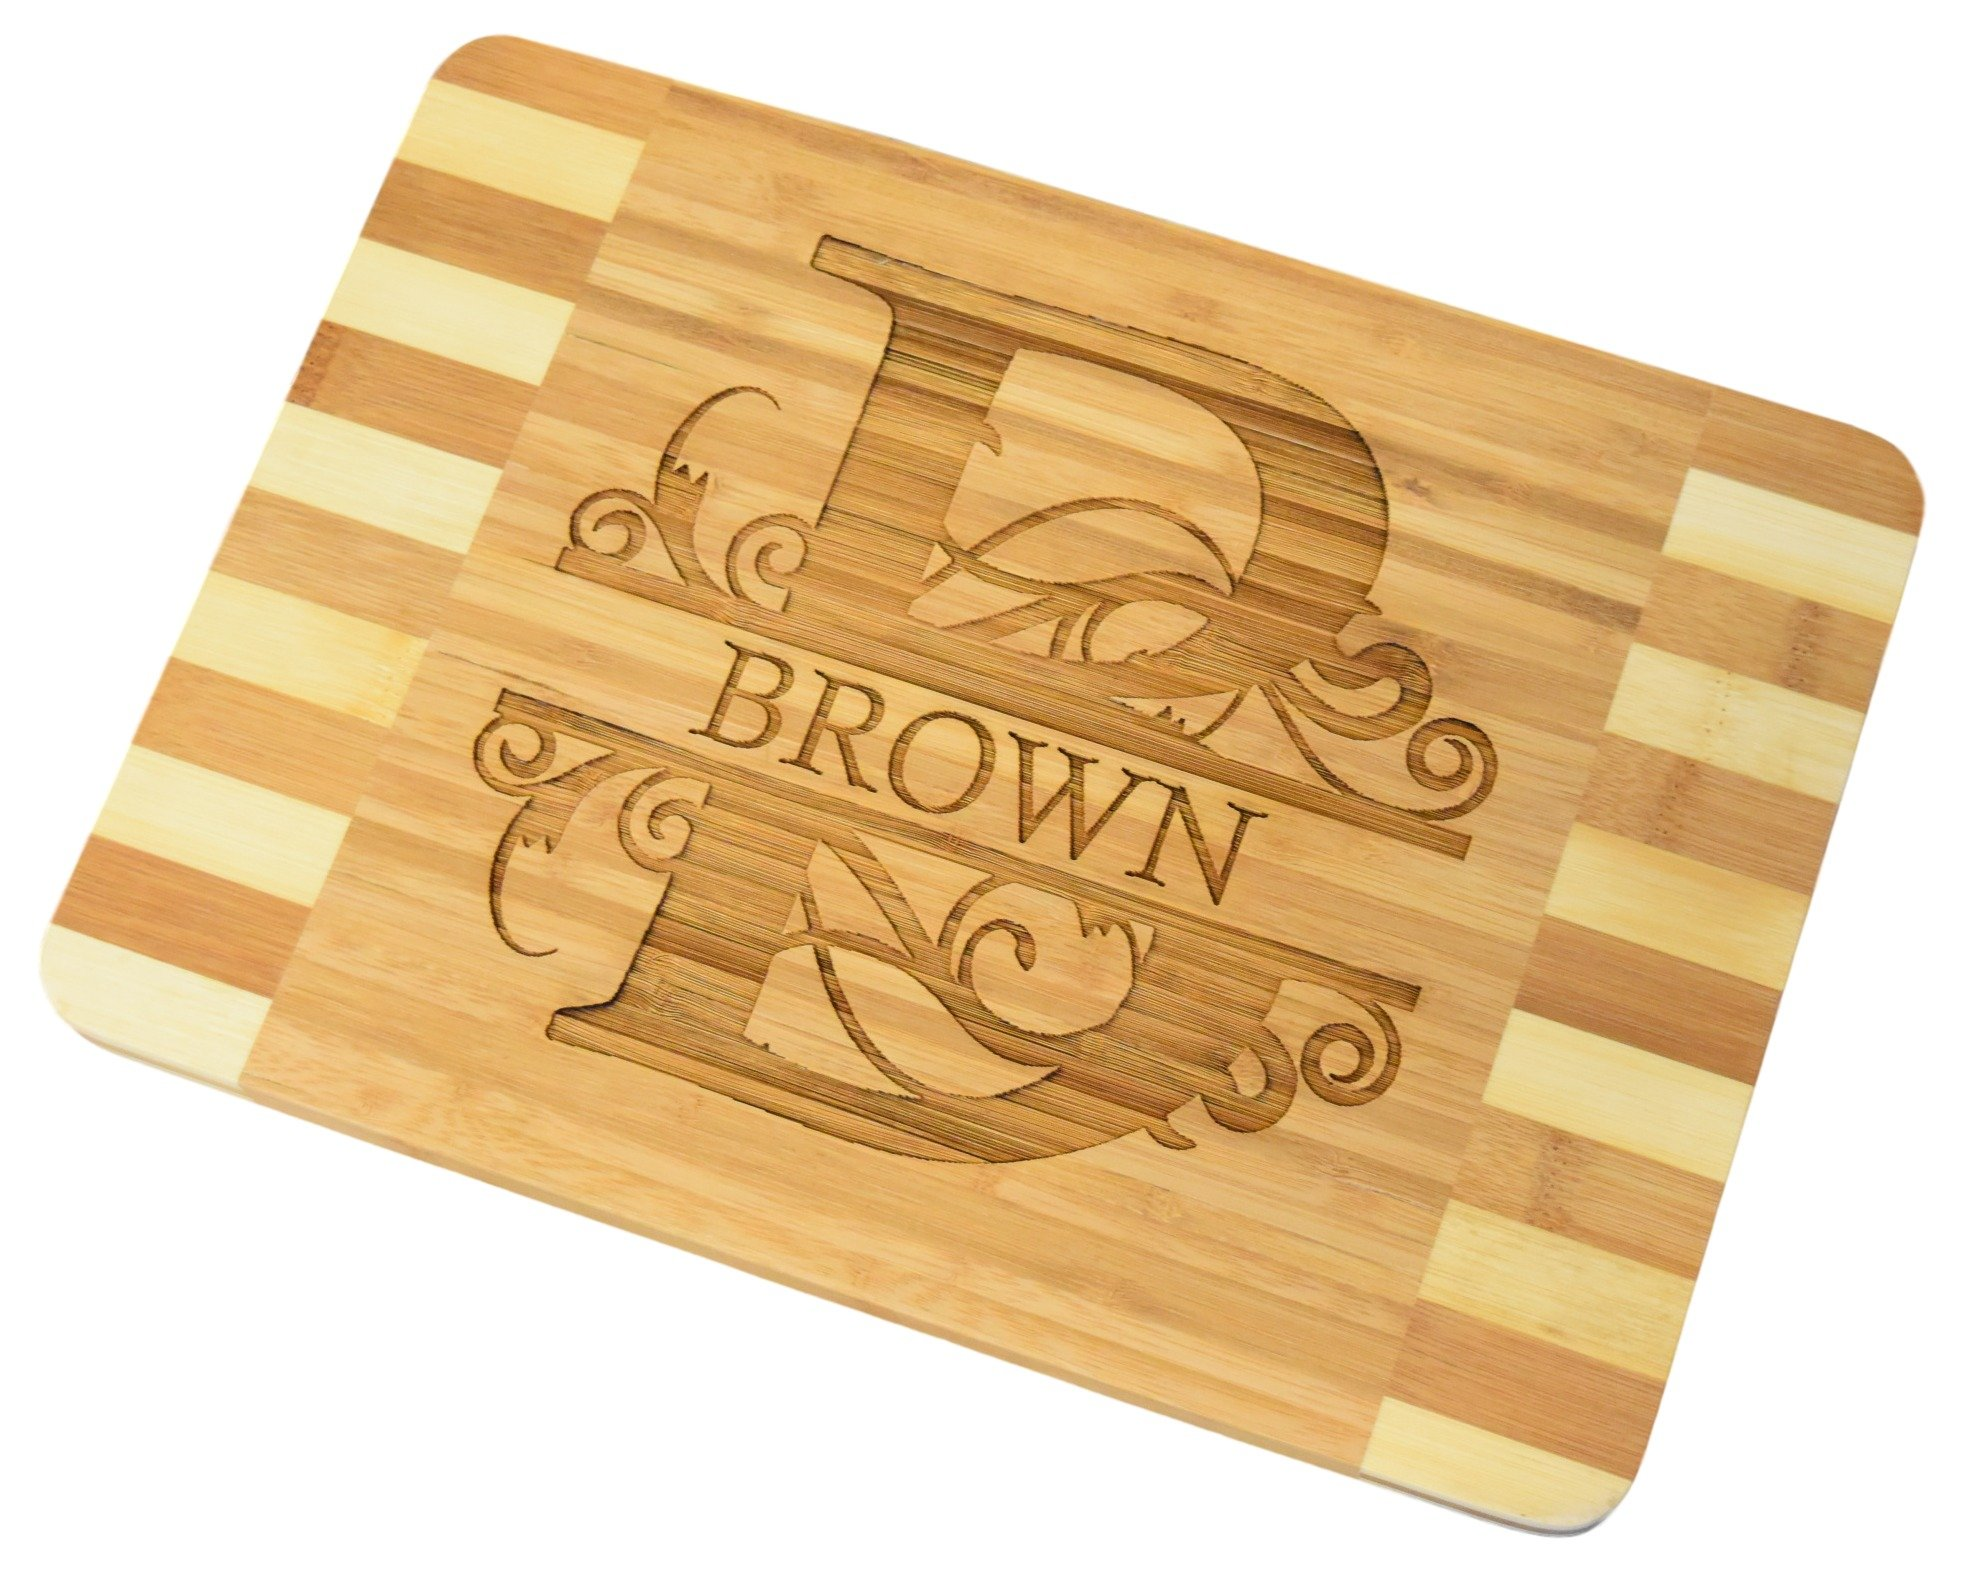 Personalized / Custom Engraved Bamboo Wood Cutting Board - 13.6''x9.6''x0.7''